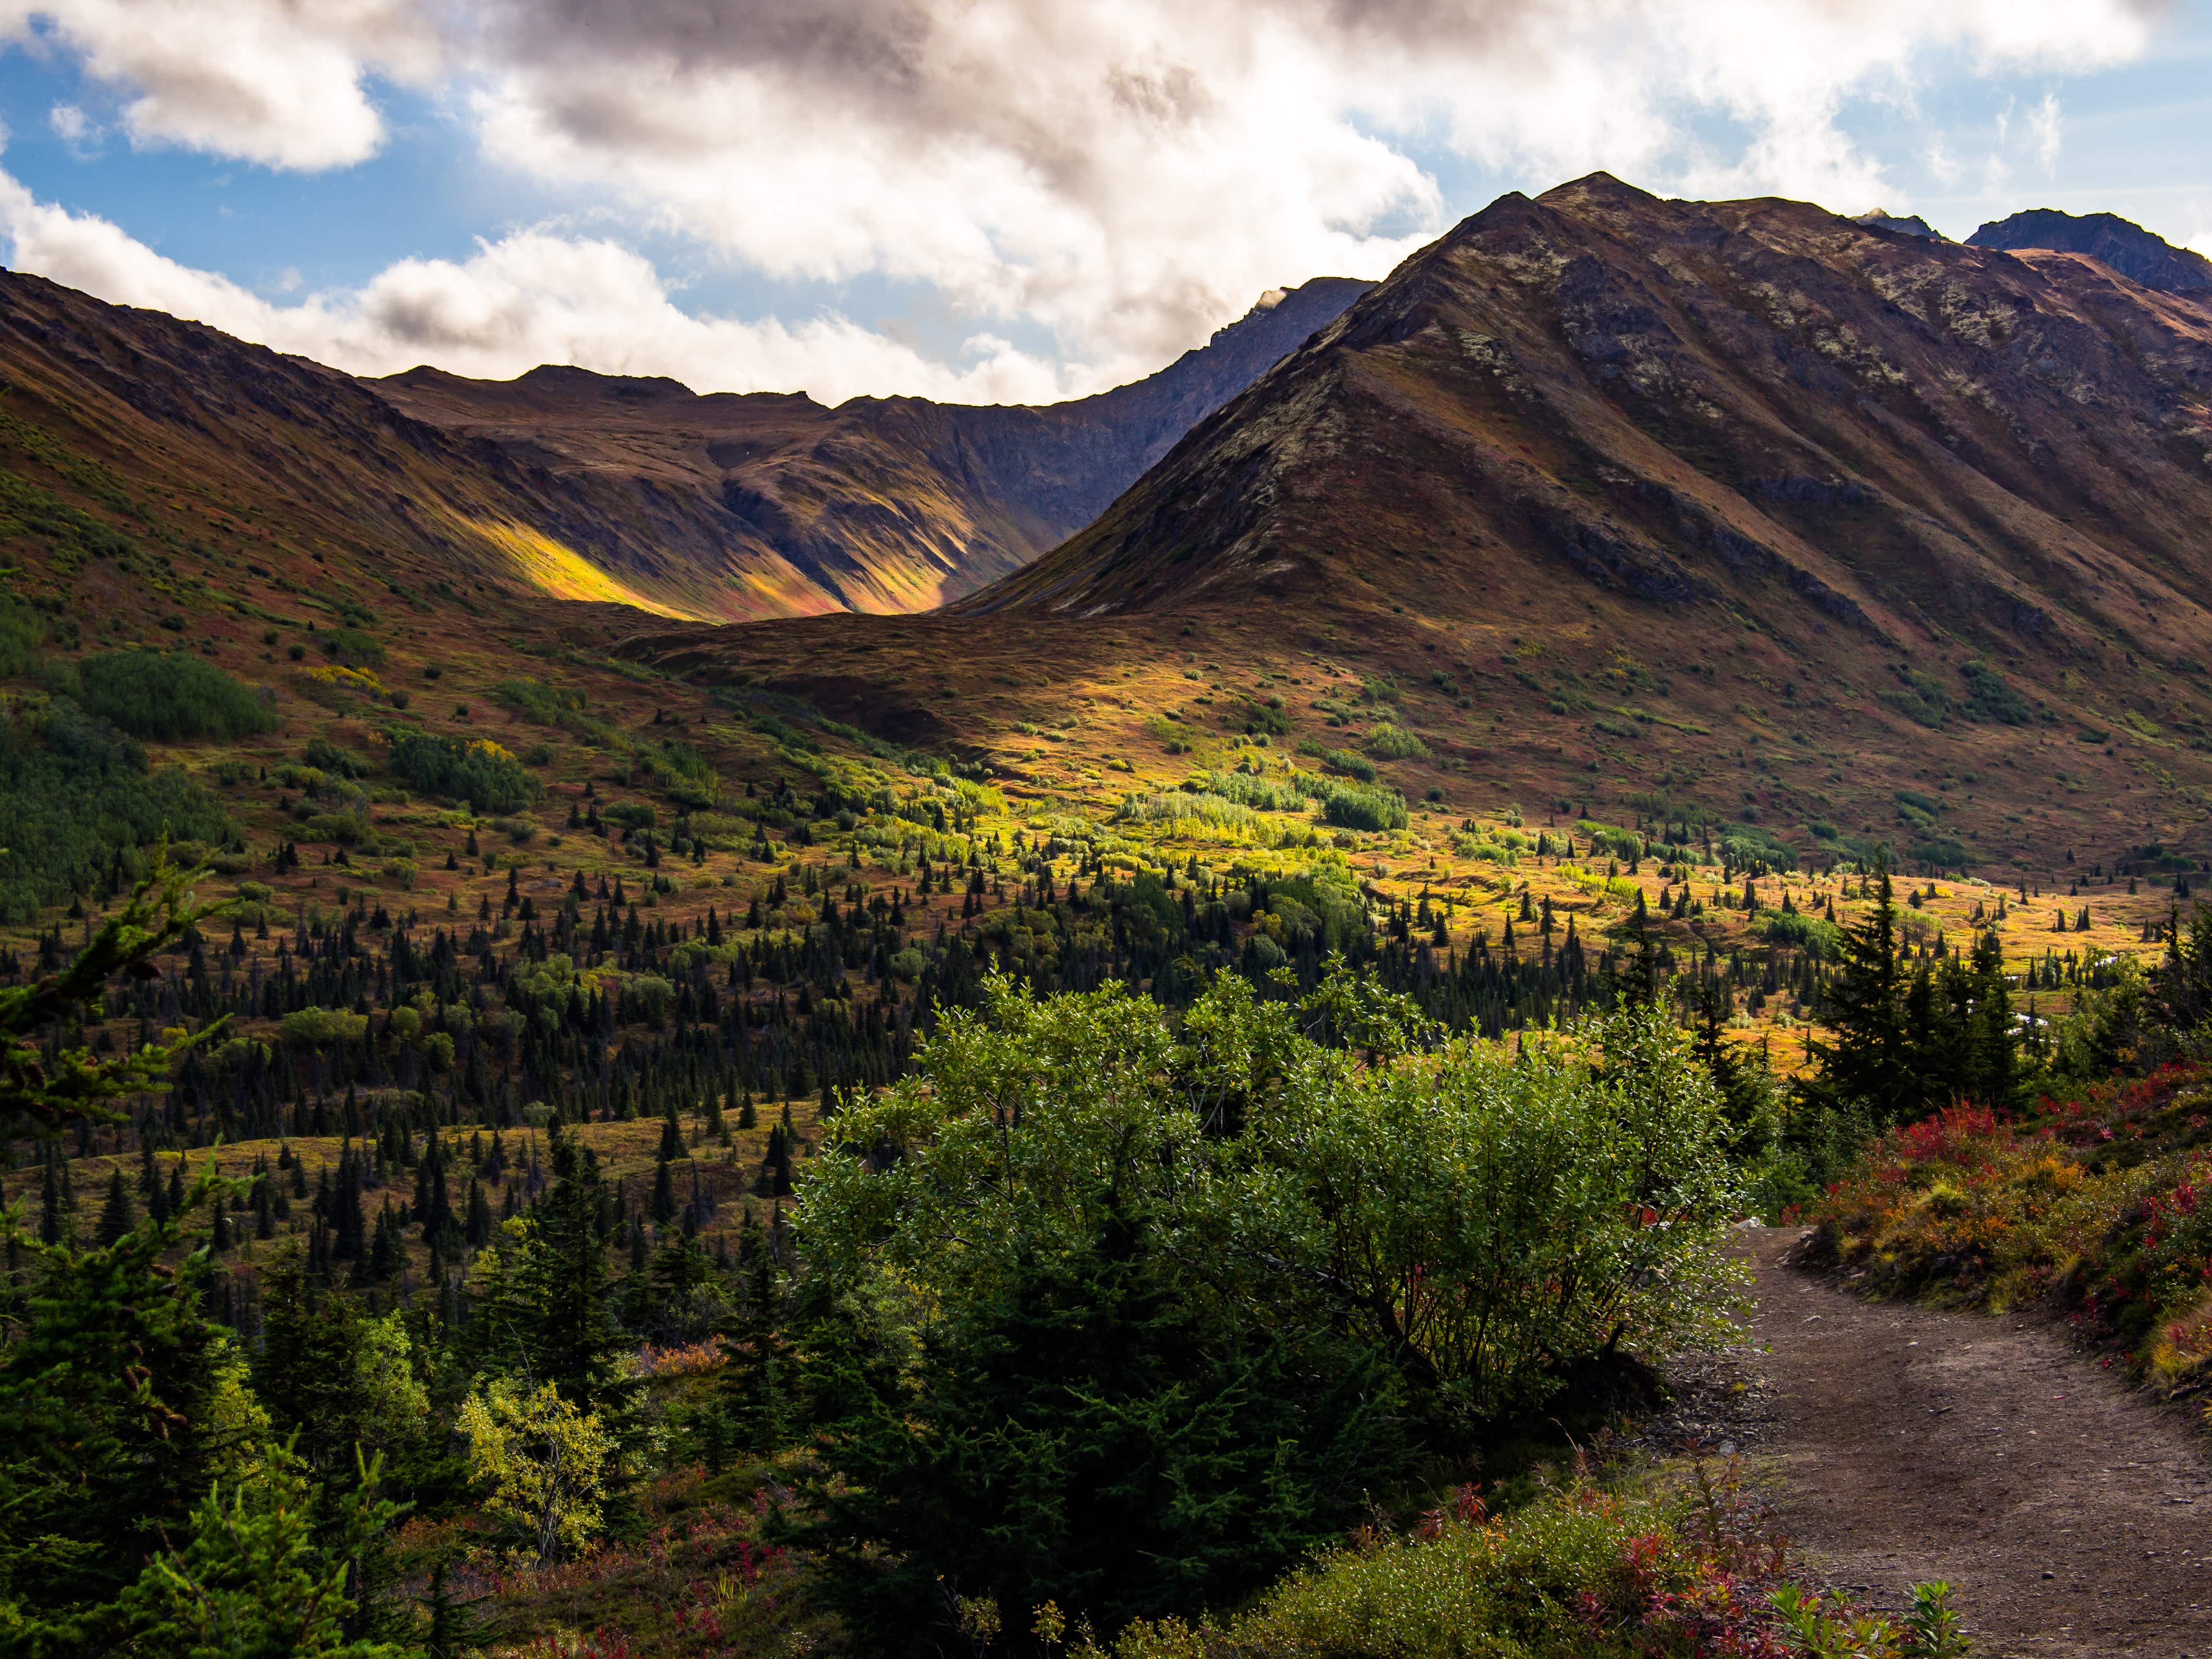 A overlook view of South Fork Eagle River valley and Hanging Valley in Chugach State Park, Alaska.